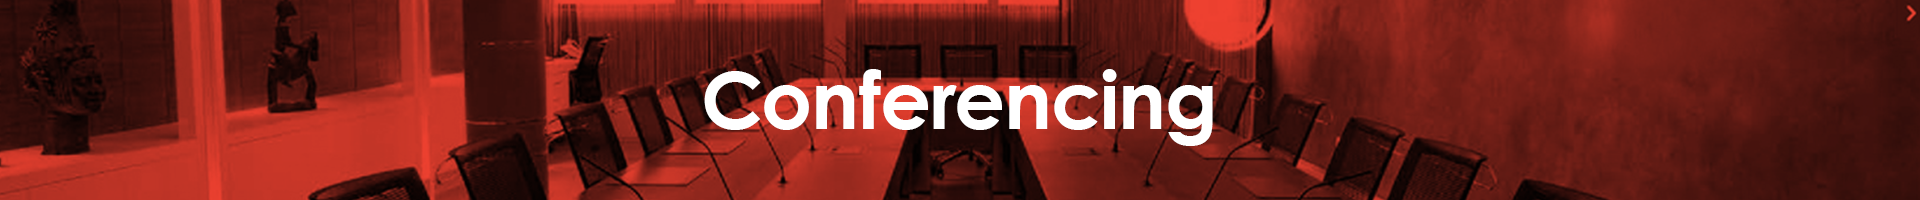 Conferencing - page title Conferencing